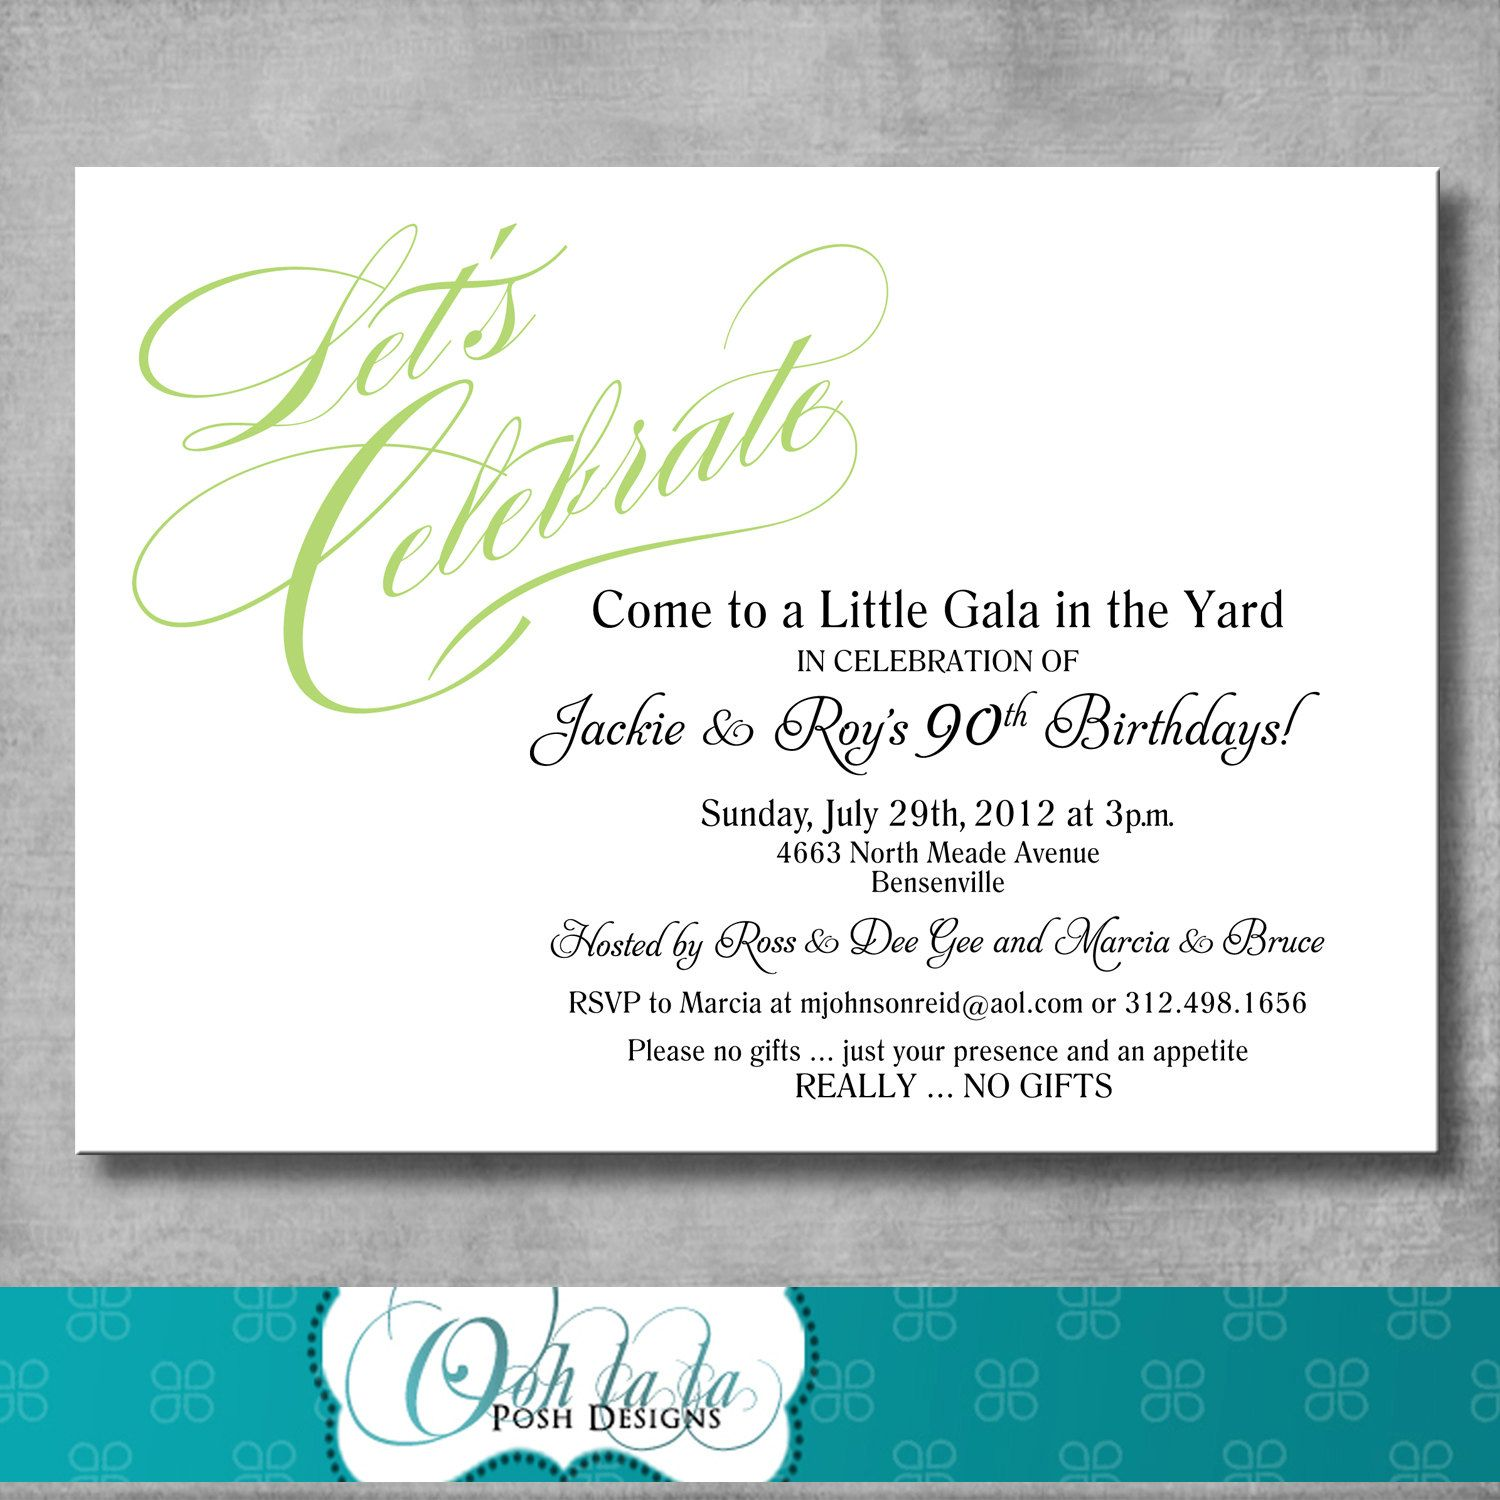 Adult Birthday Party Invitation $12 00 via Etsy